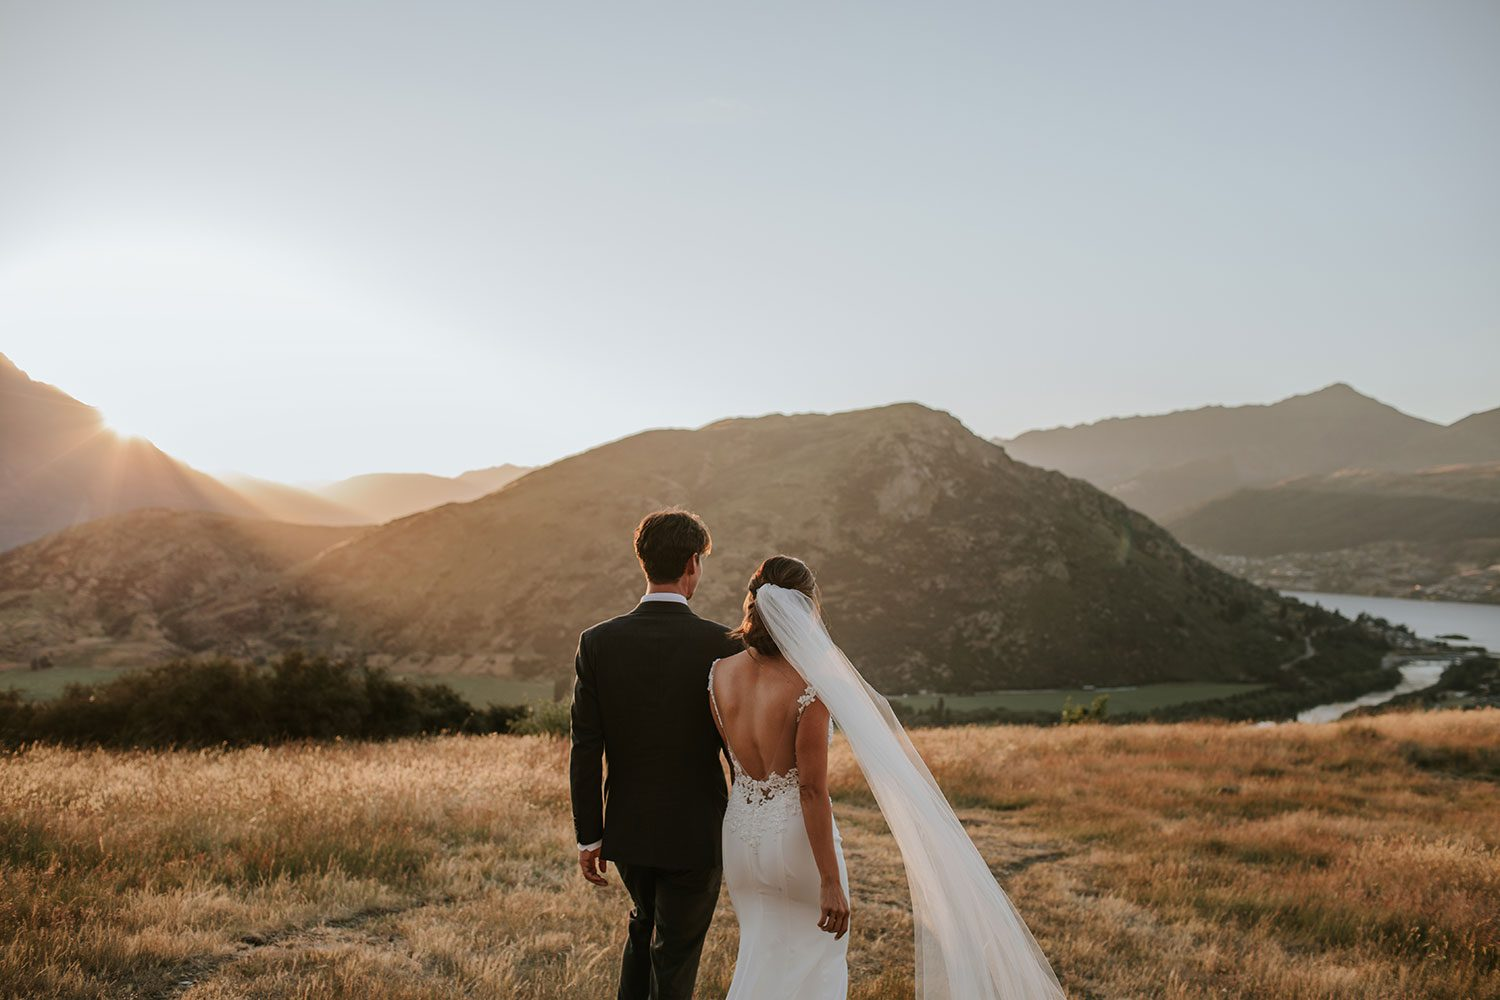 Bride wearing bespoke bridal gown with richly beaded lace over sheer tulle bodice and low back from Auckland wedding dress designer Vinka designs - in field with groom sun setting